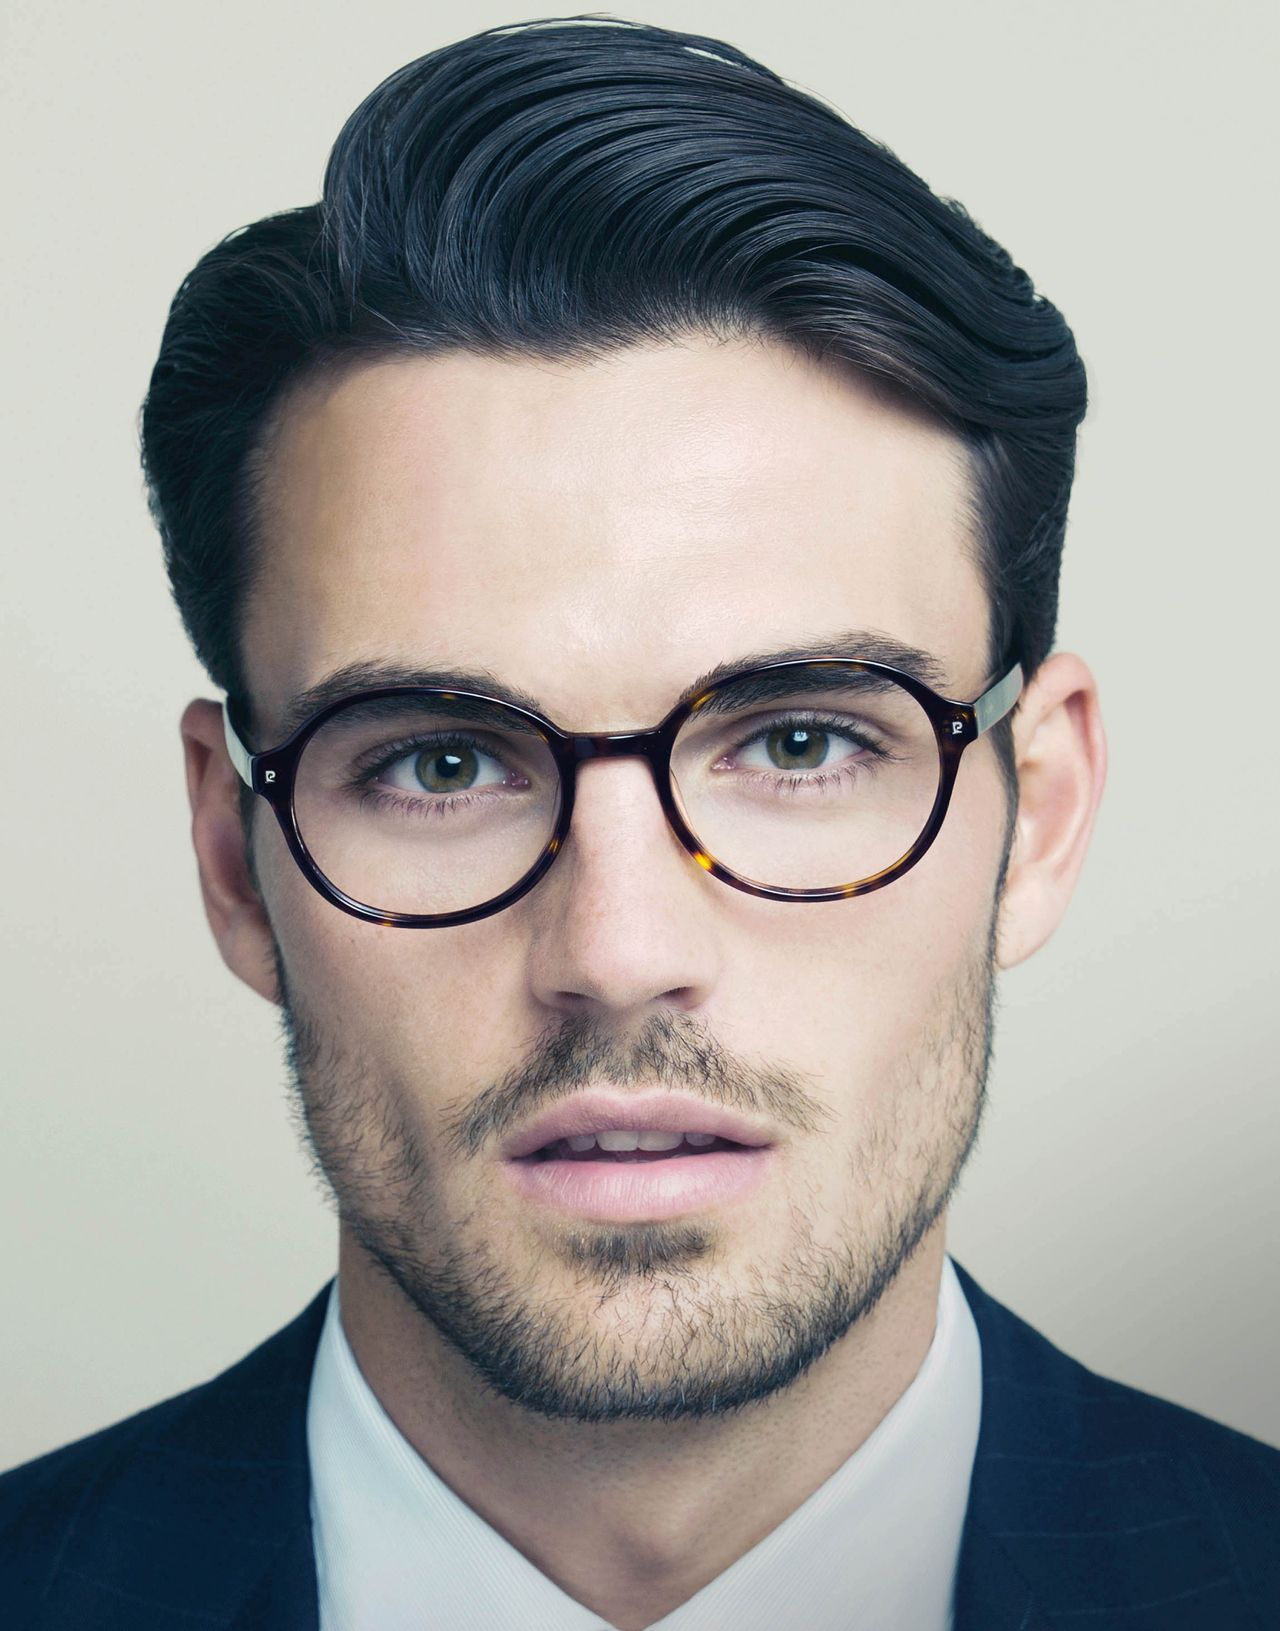 Guy Hairstyle Alluring Hipster Haircut For Men 2015  Pinterest  Pierre Cardin Glass And